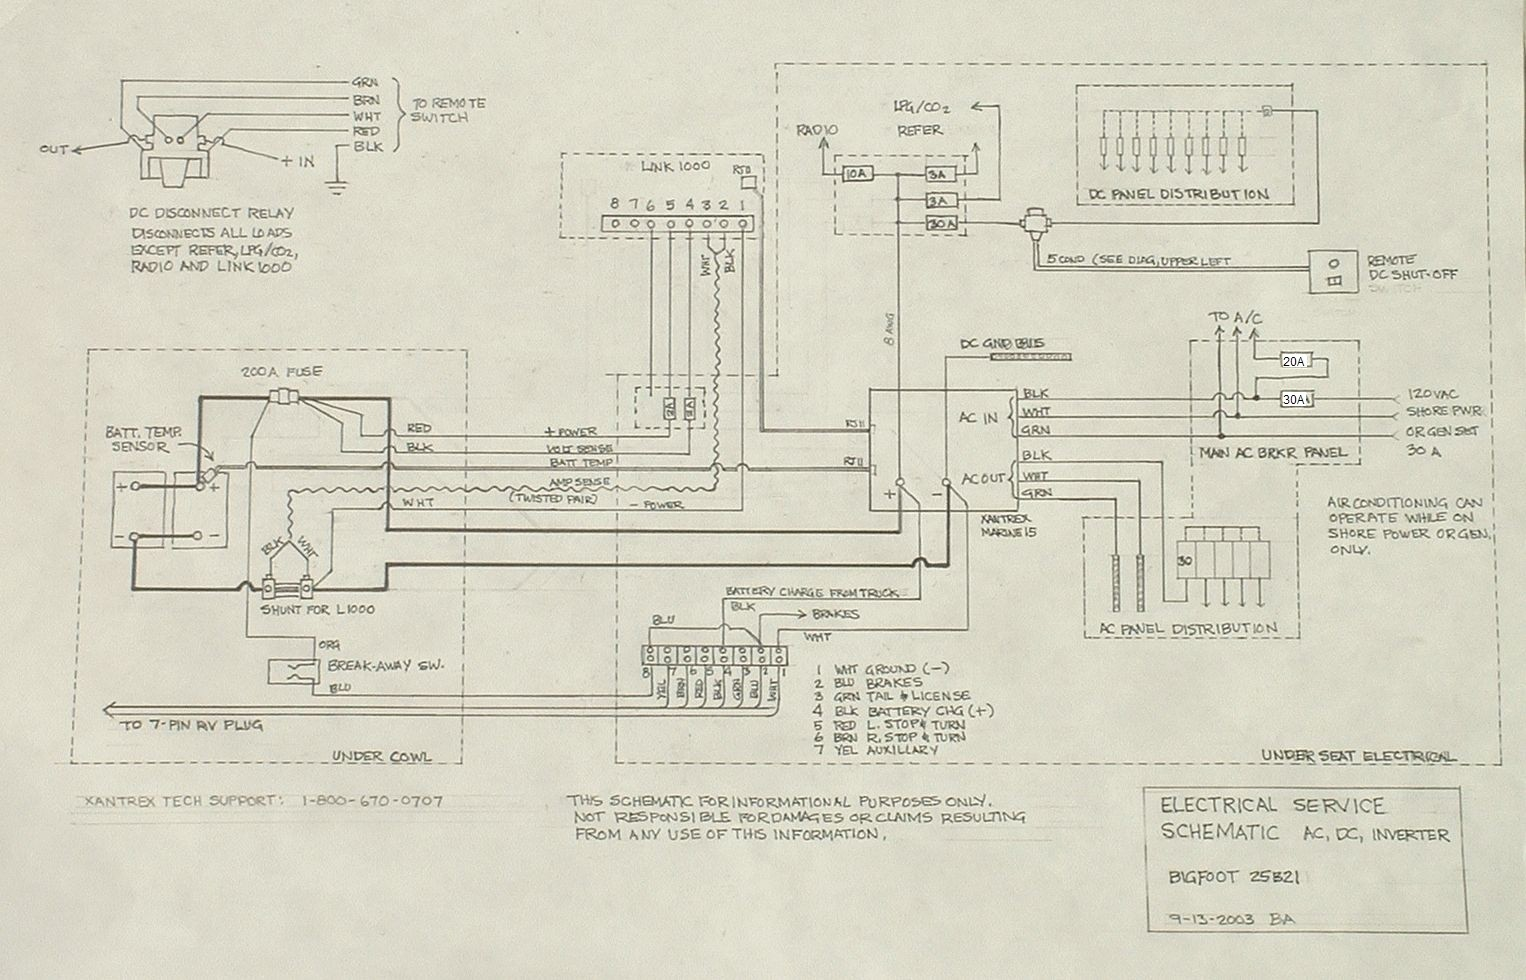 schematic bf_inverter bigfoot camper wiring diagram at readyjetset.co